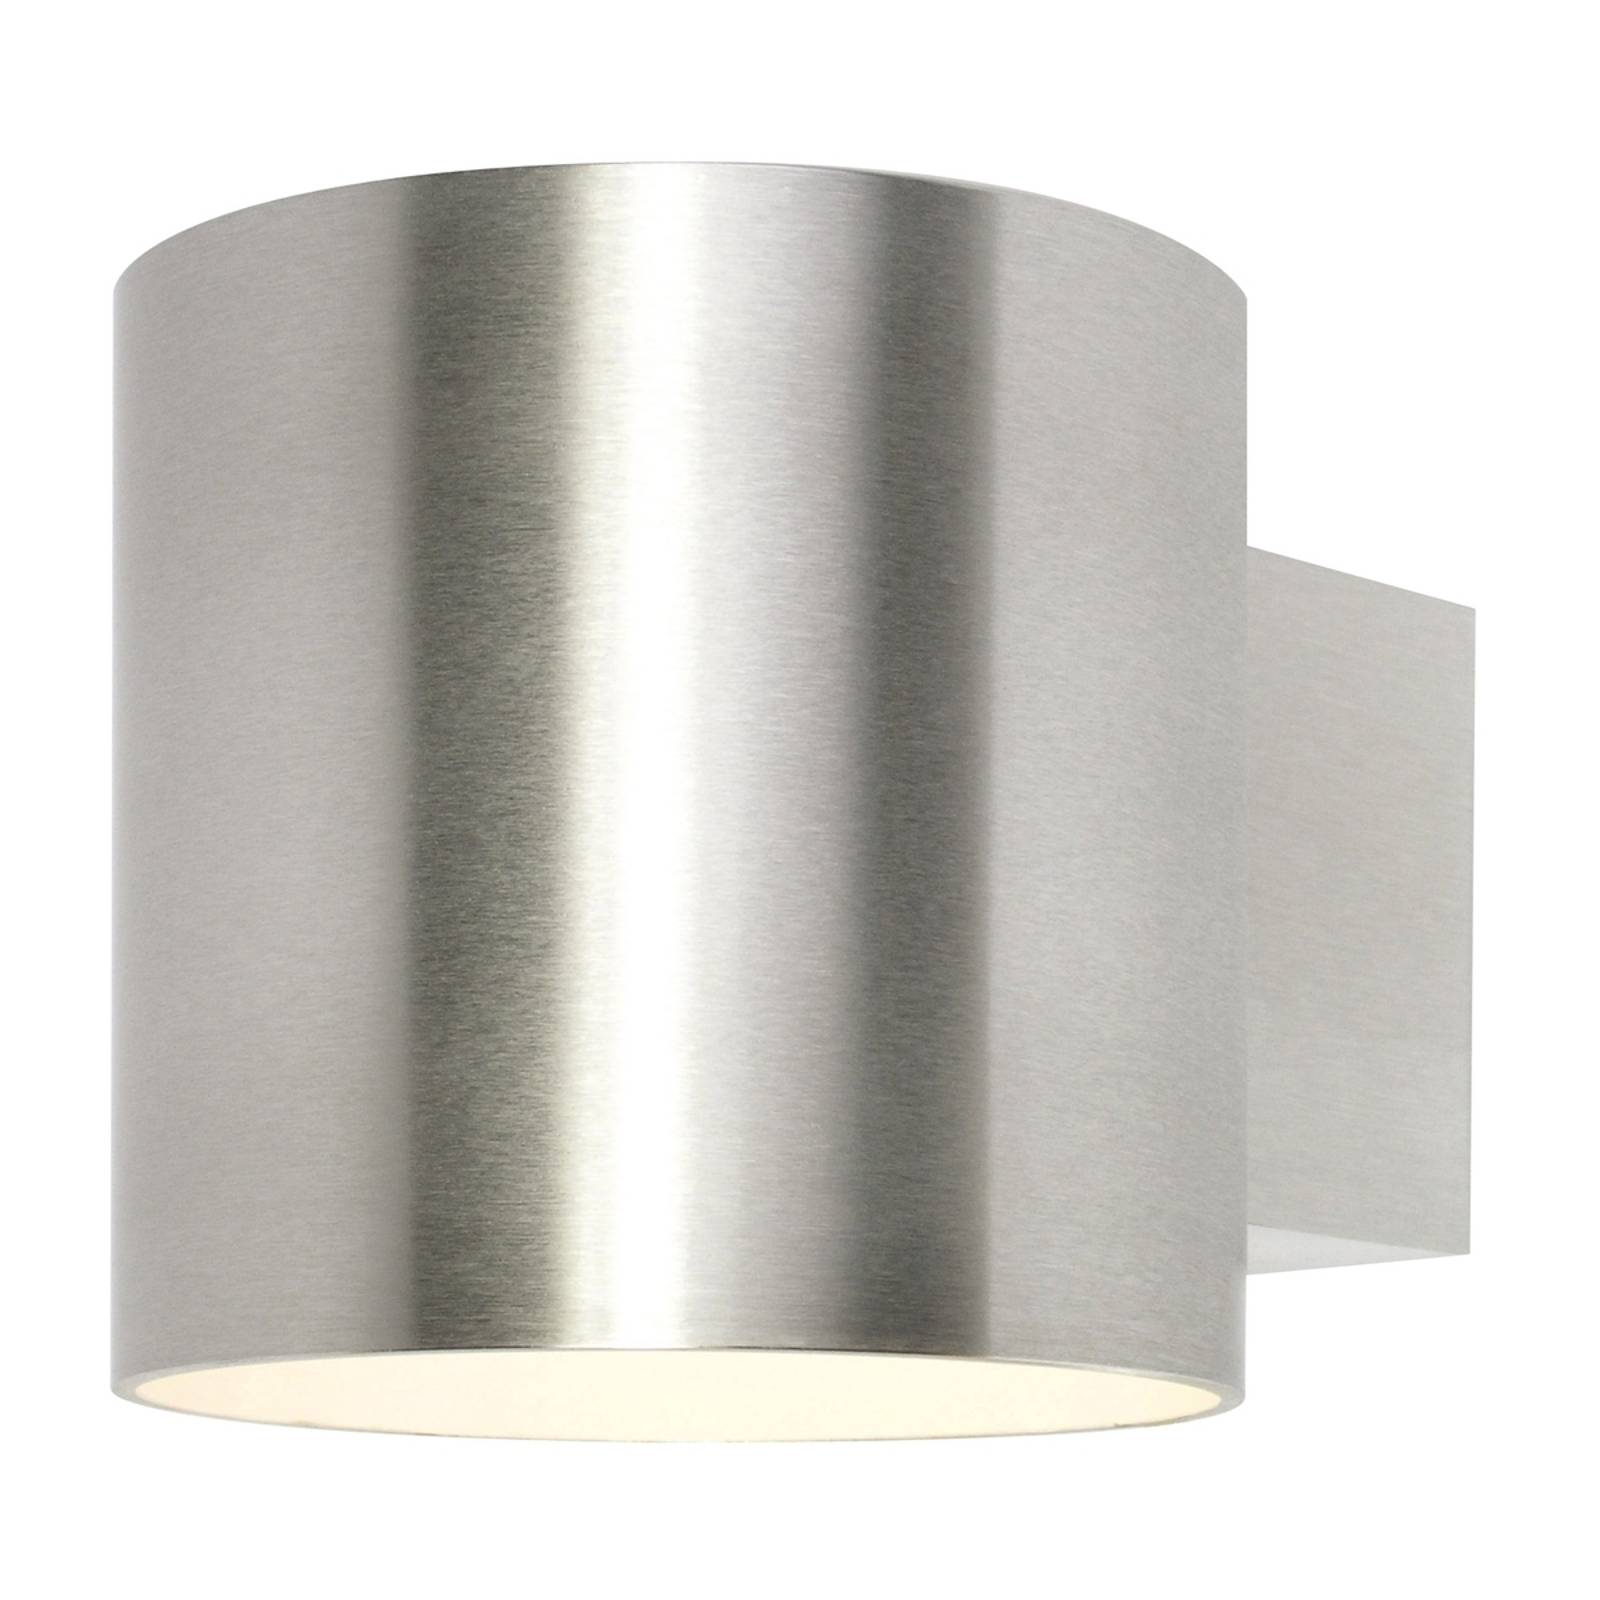 Simple up-and-down wall light PROJECT aluminium from Oligo